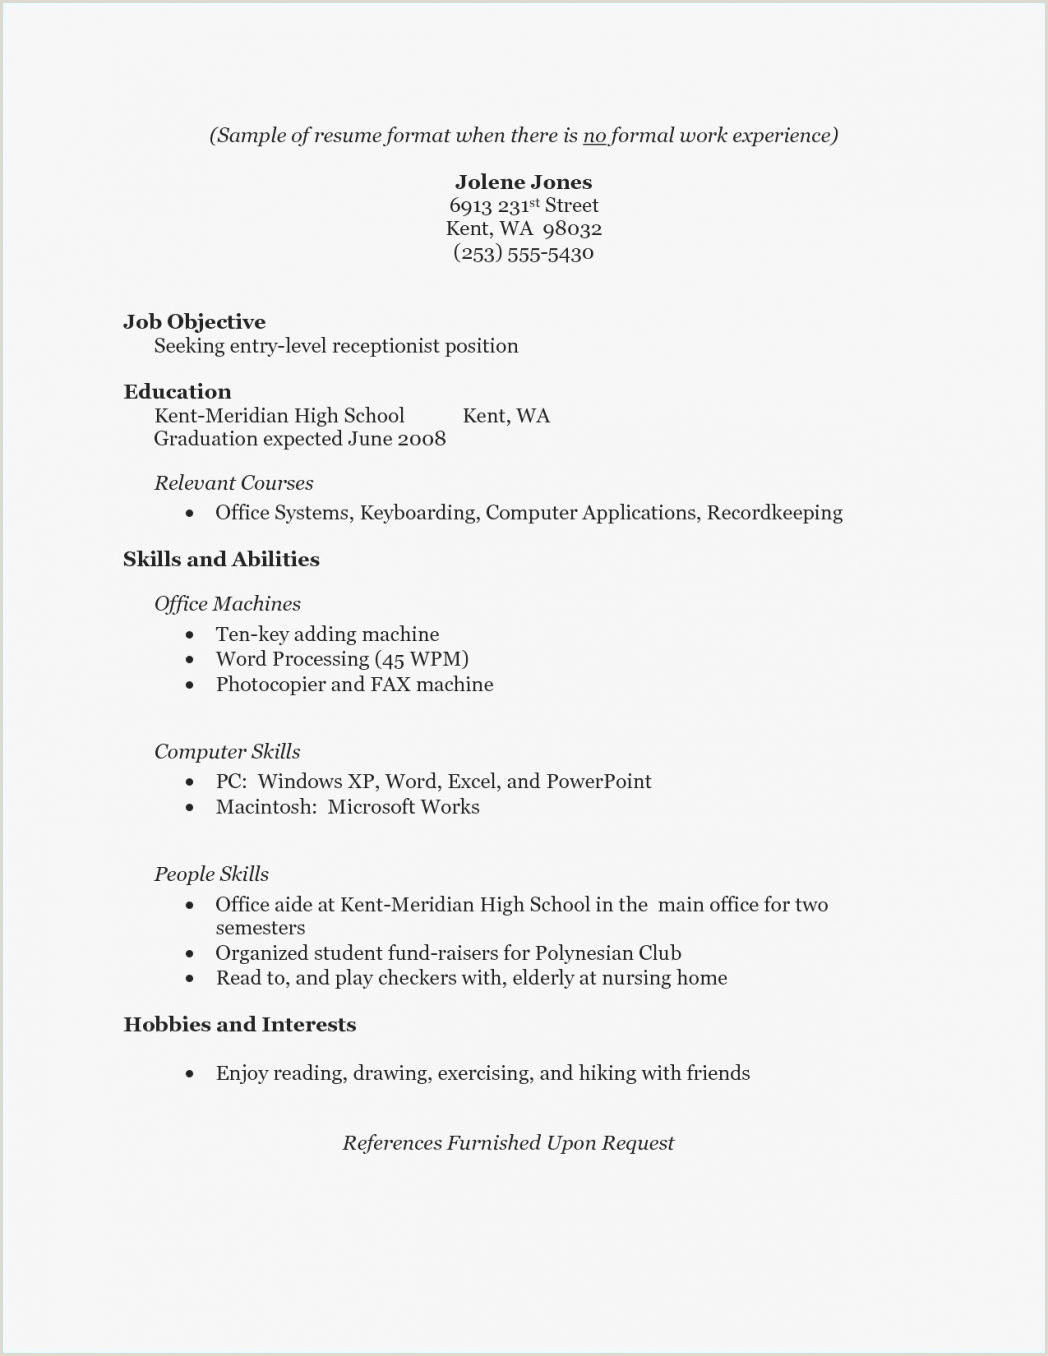 Pharmacy Resume Objectives Resume for Receptionist with No Experience Unique Nanny